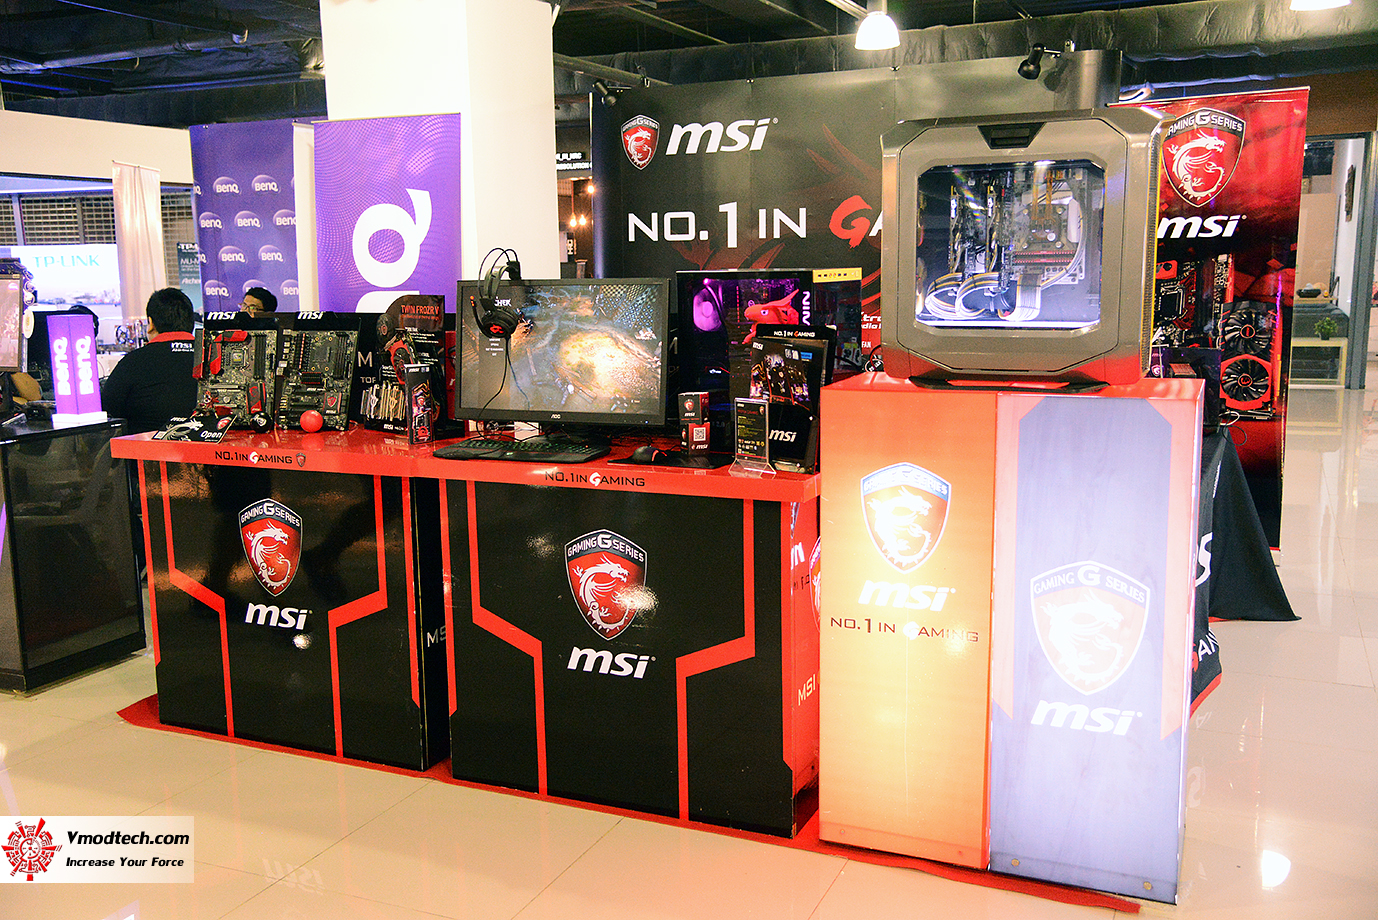 dsc 7612 AMD OMG! Party 2015 (AMD Overclock Modding Gaming Party 2015)